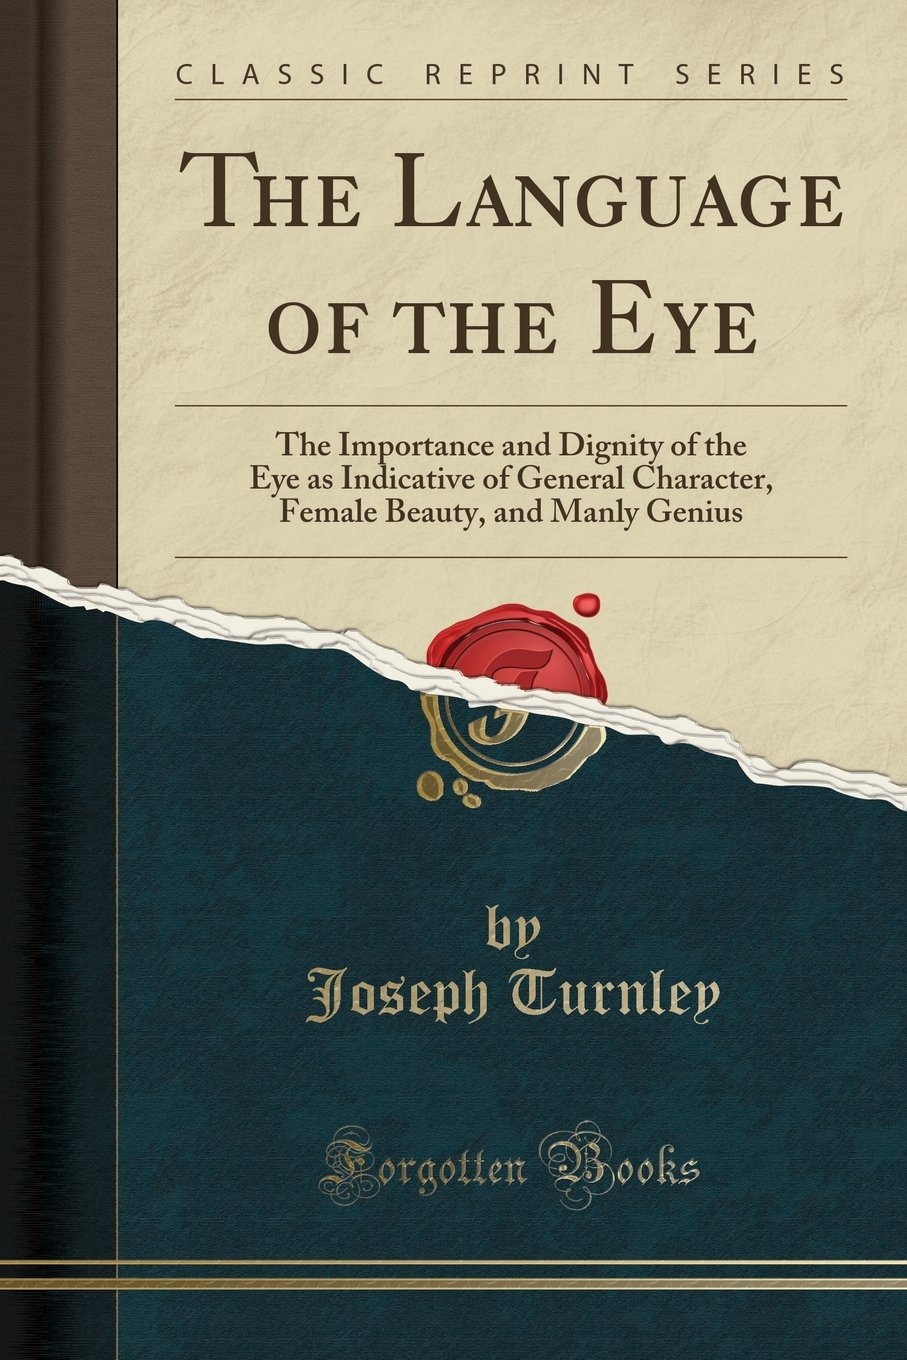 Download The Language of the Eye: The Importance and Dignity of the Eye as Indicative of General Character, Female Beauty, and Manly Genius (Classic Reprint) PDF